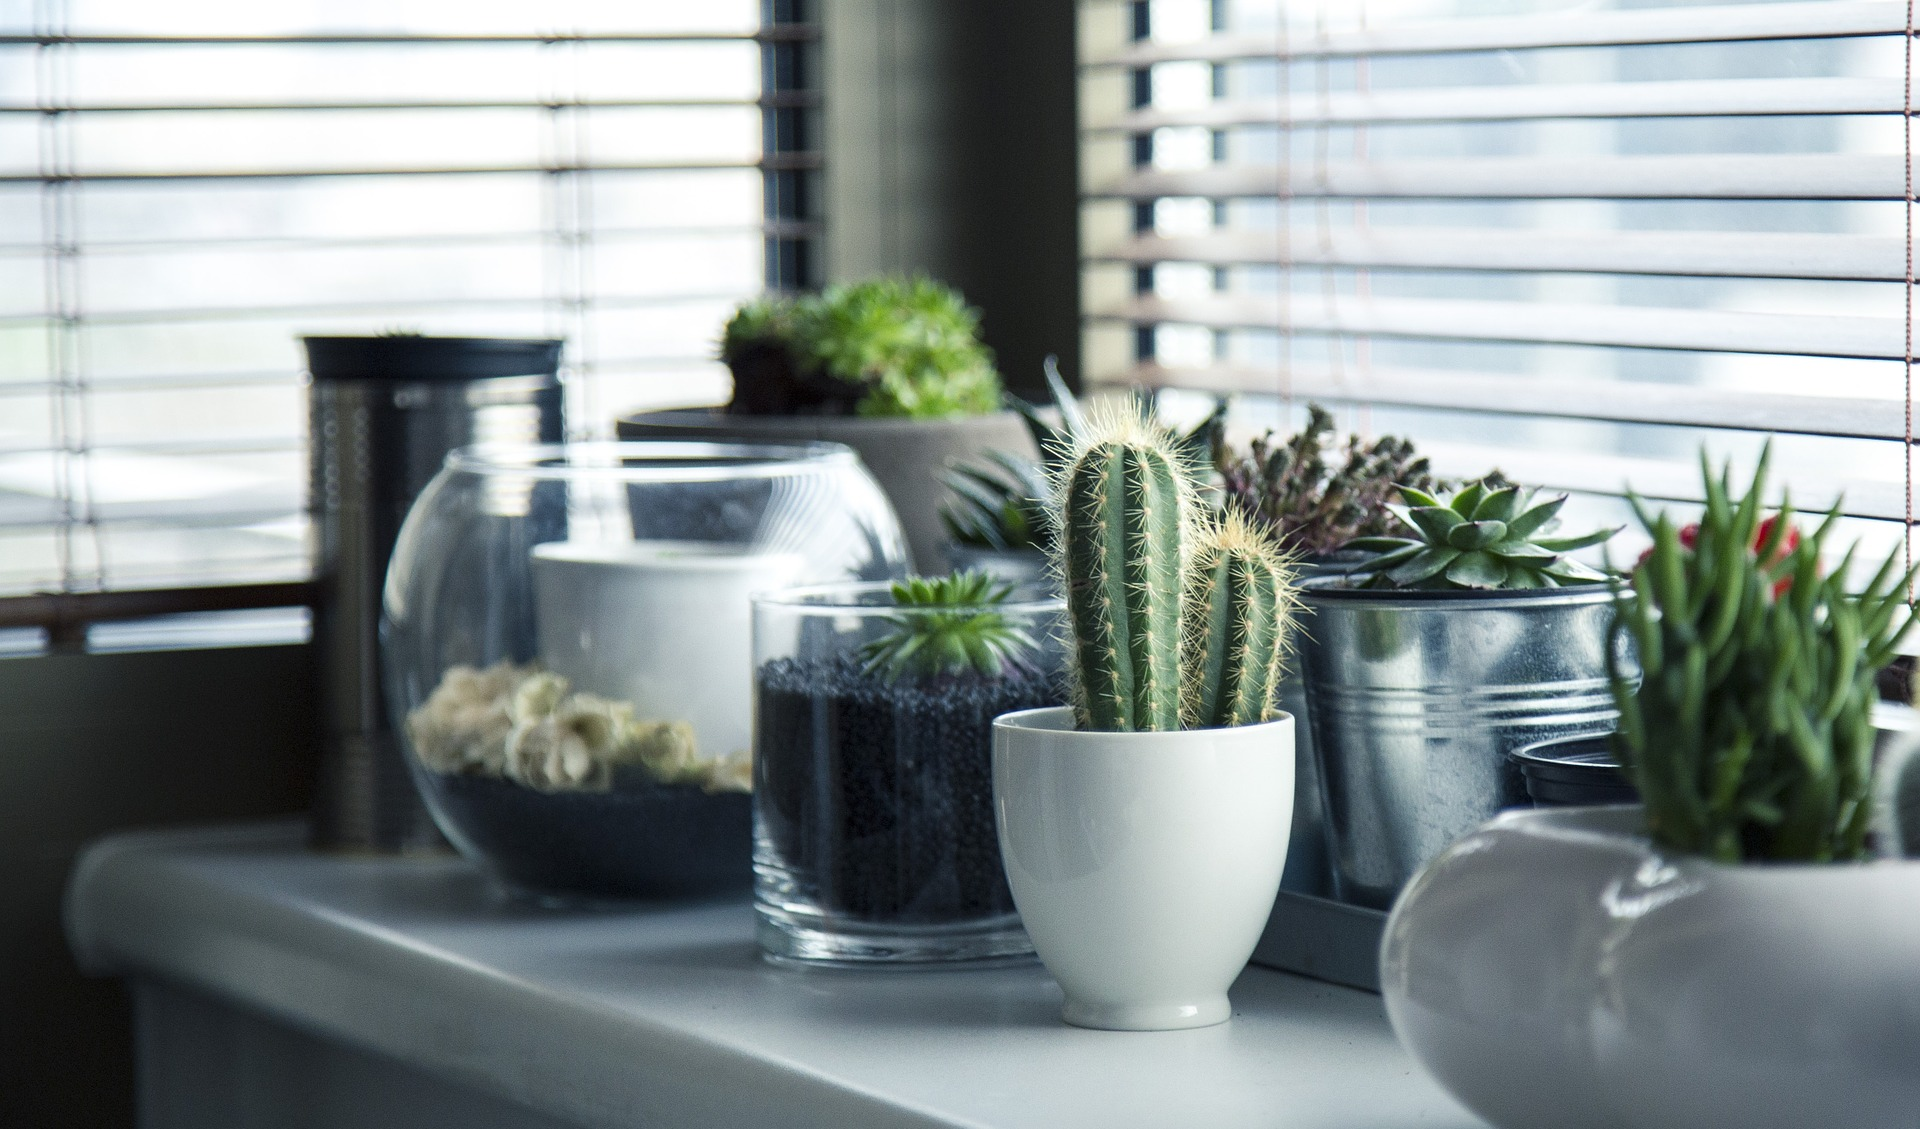 pots 716579 1920 - HomeBuyers Survey, Building or Snagging Survey. Which is right for you?